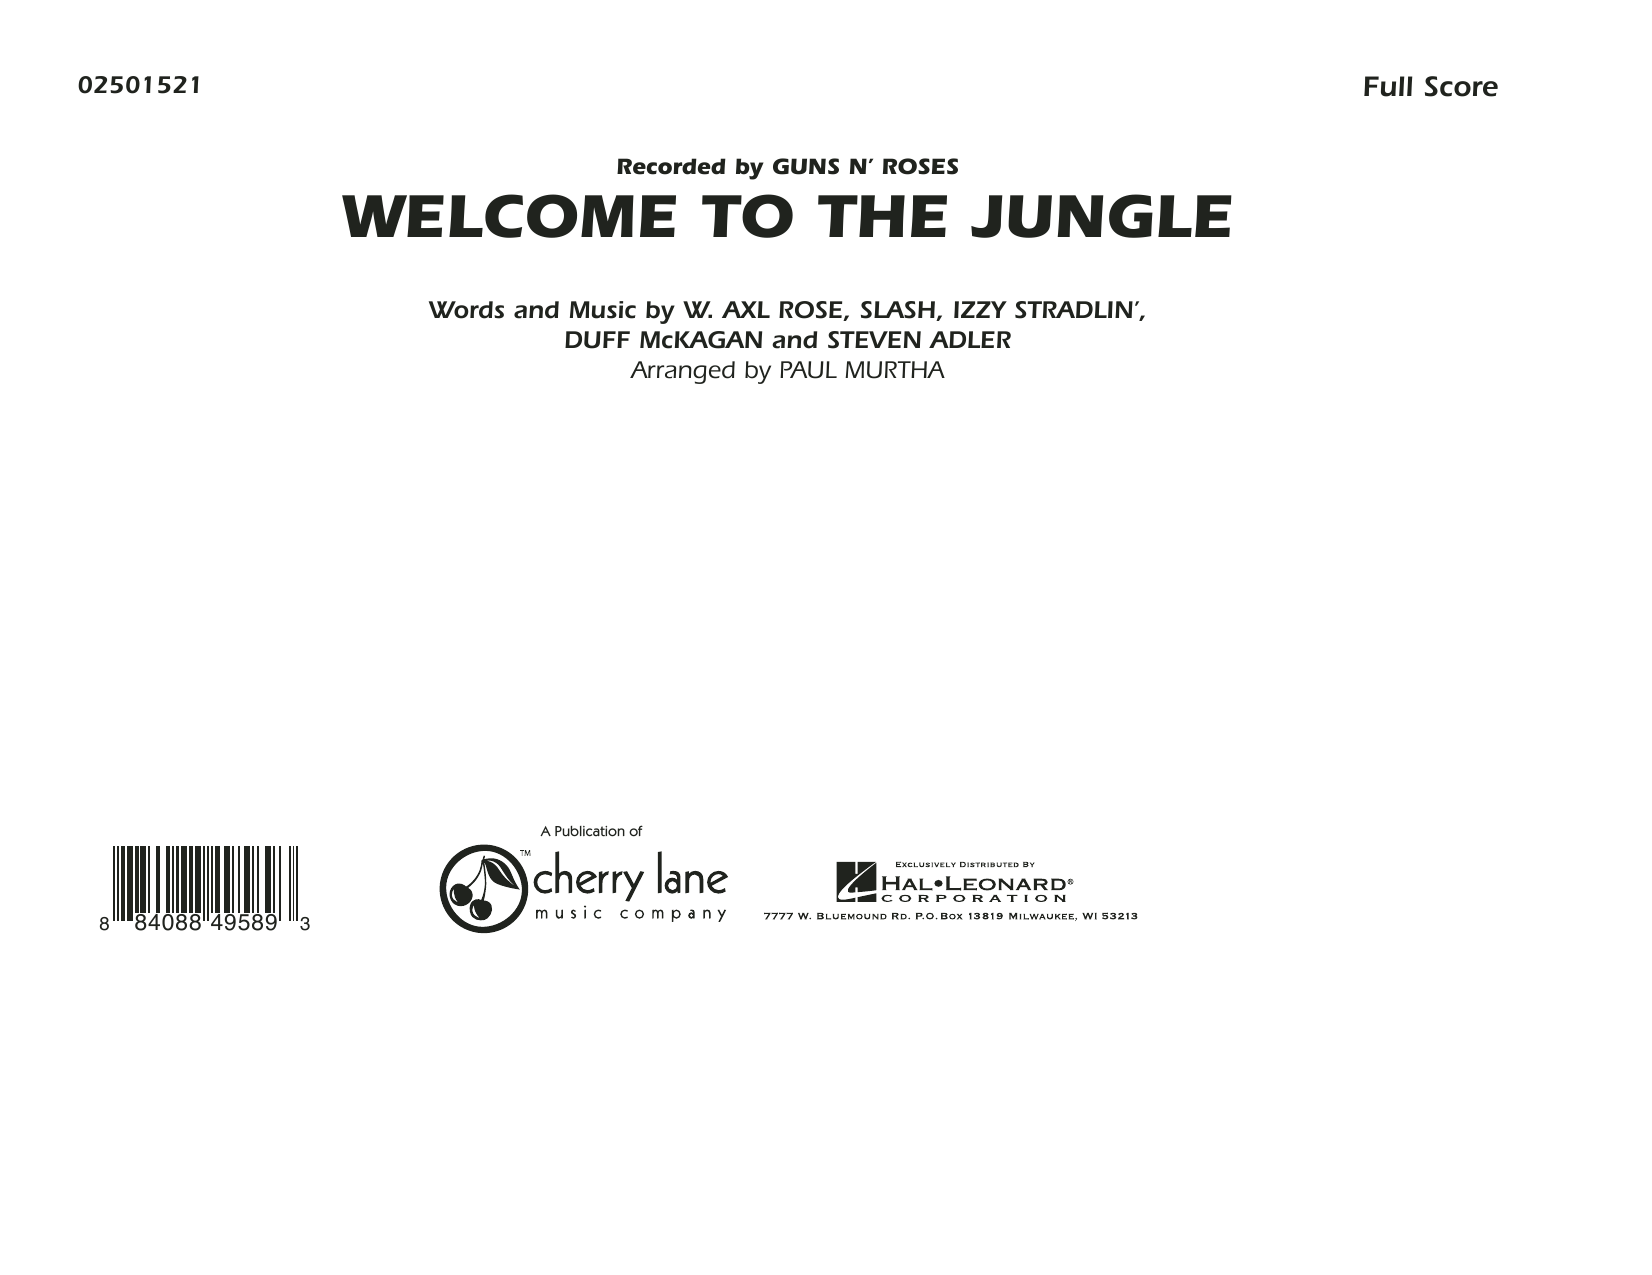 Welcome To The Jungle (COMPLETE) sheet music for marching band by Slash, Axl Rose, Duff McKagan, Steven Adler and Paul Murtha. Score Image Preview.